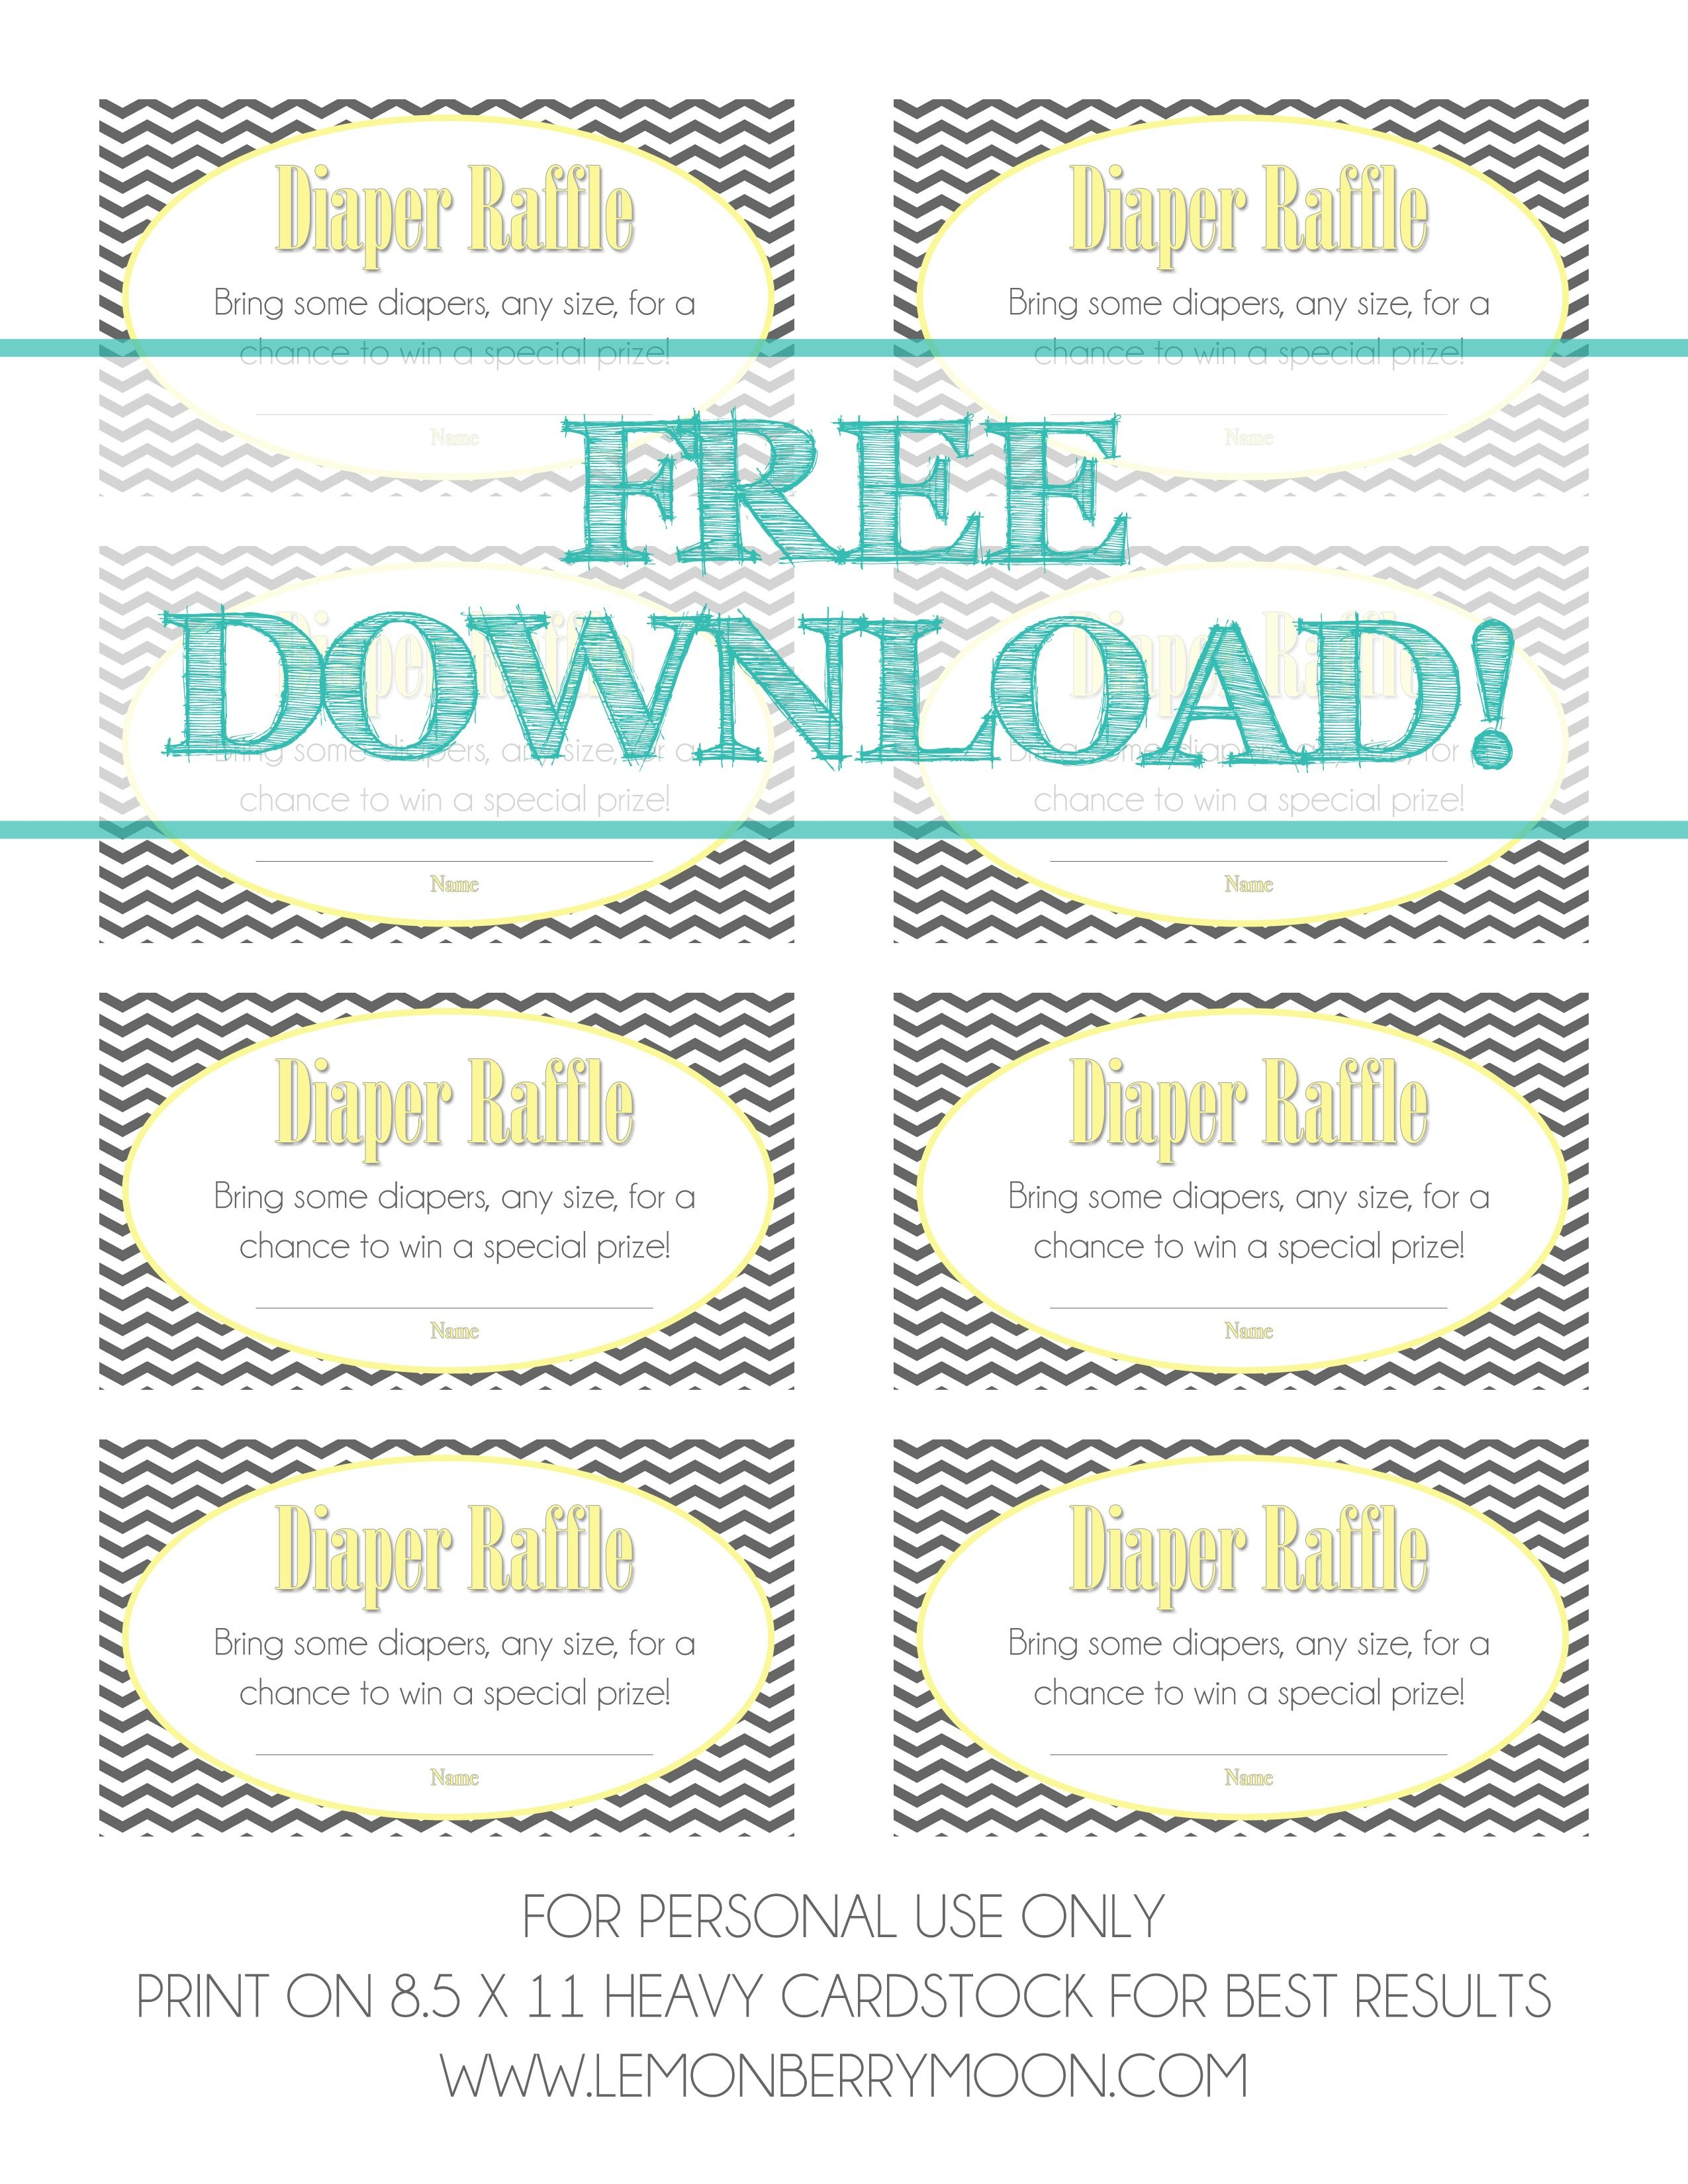 Free Download - Baby Diaper Raffle Template   Baaby Shower   Baby - Free Printable Diaper Raffle Tickets For Boy Baby Shower